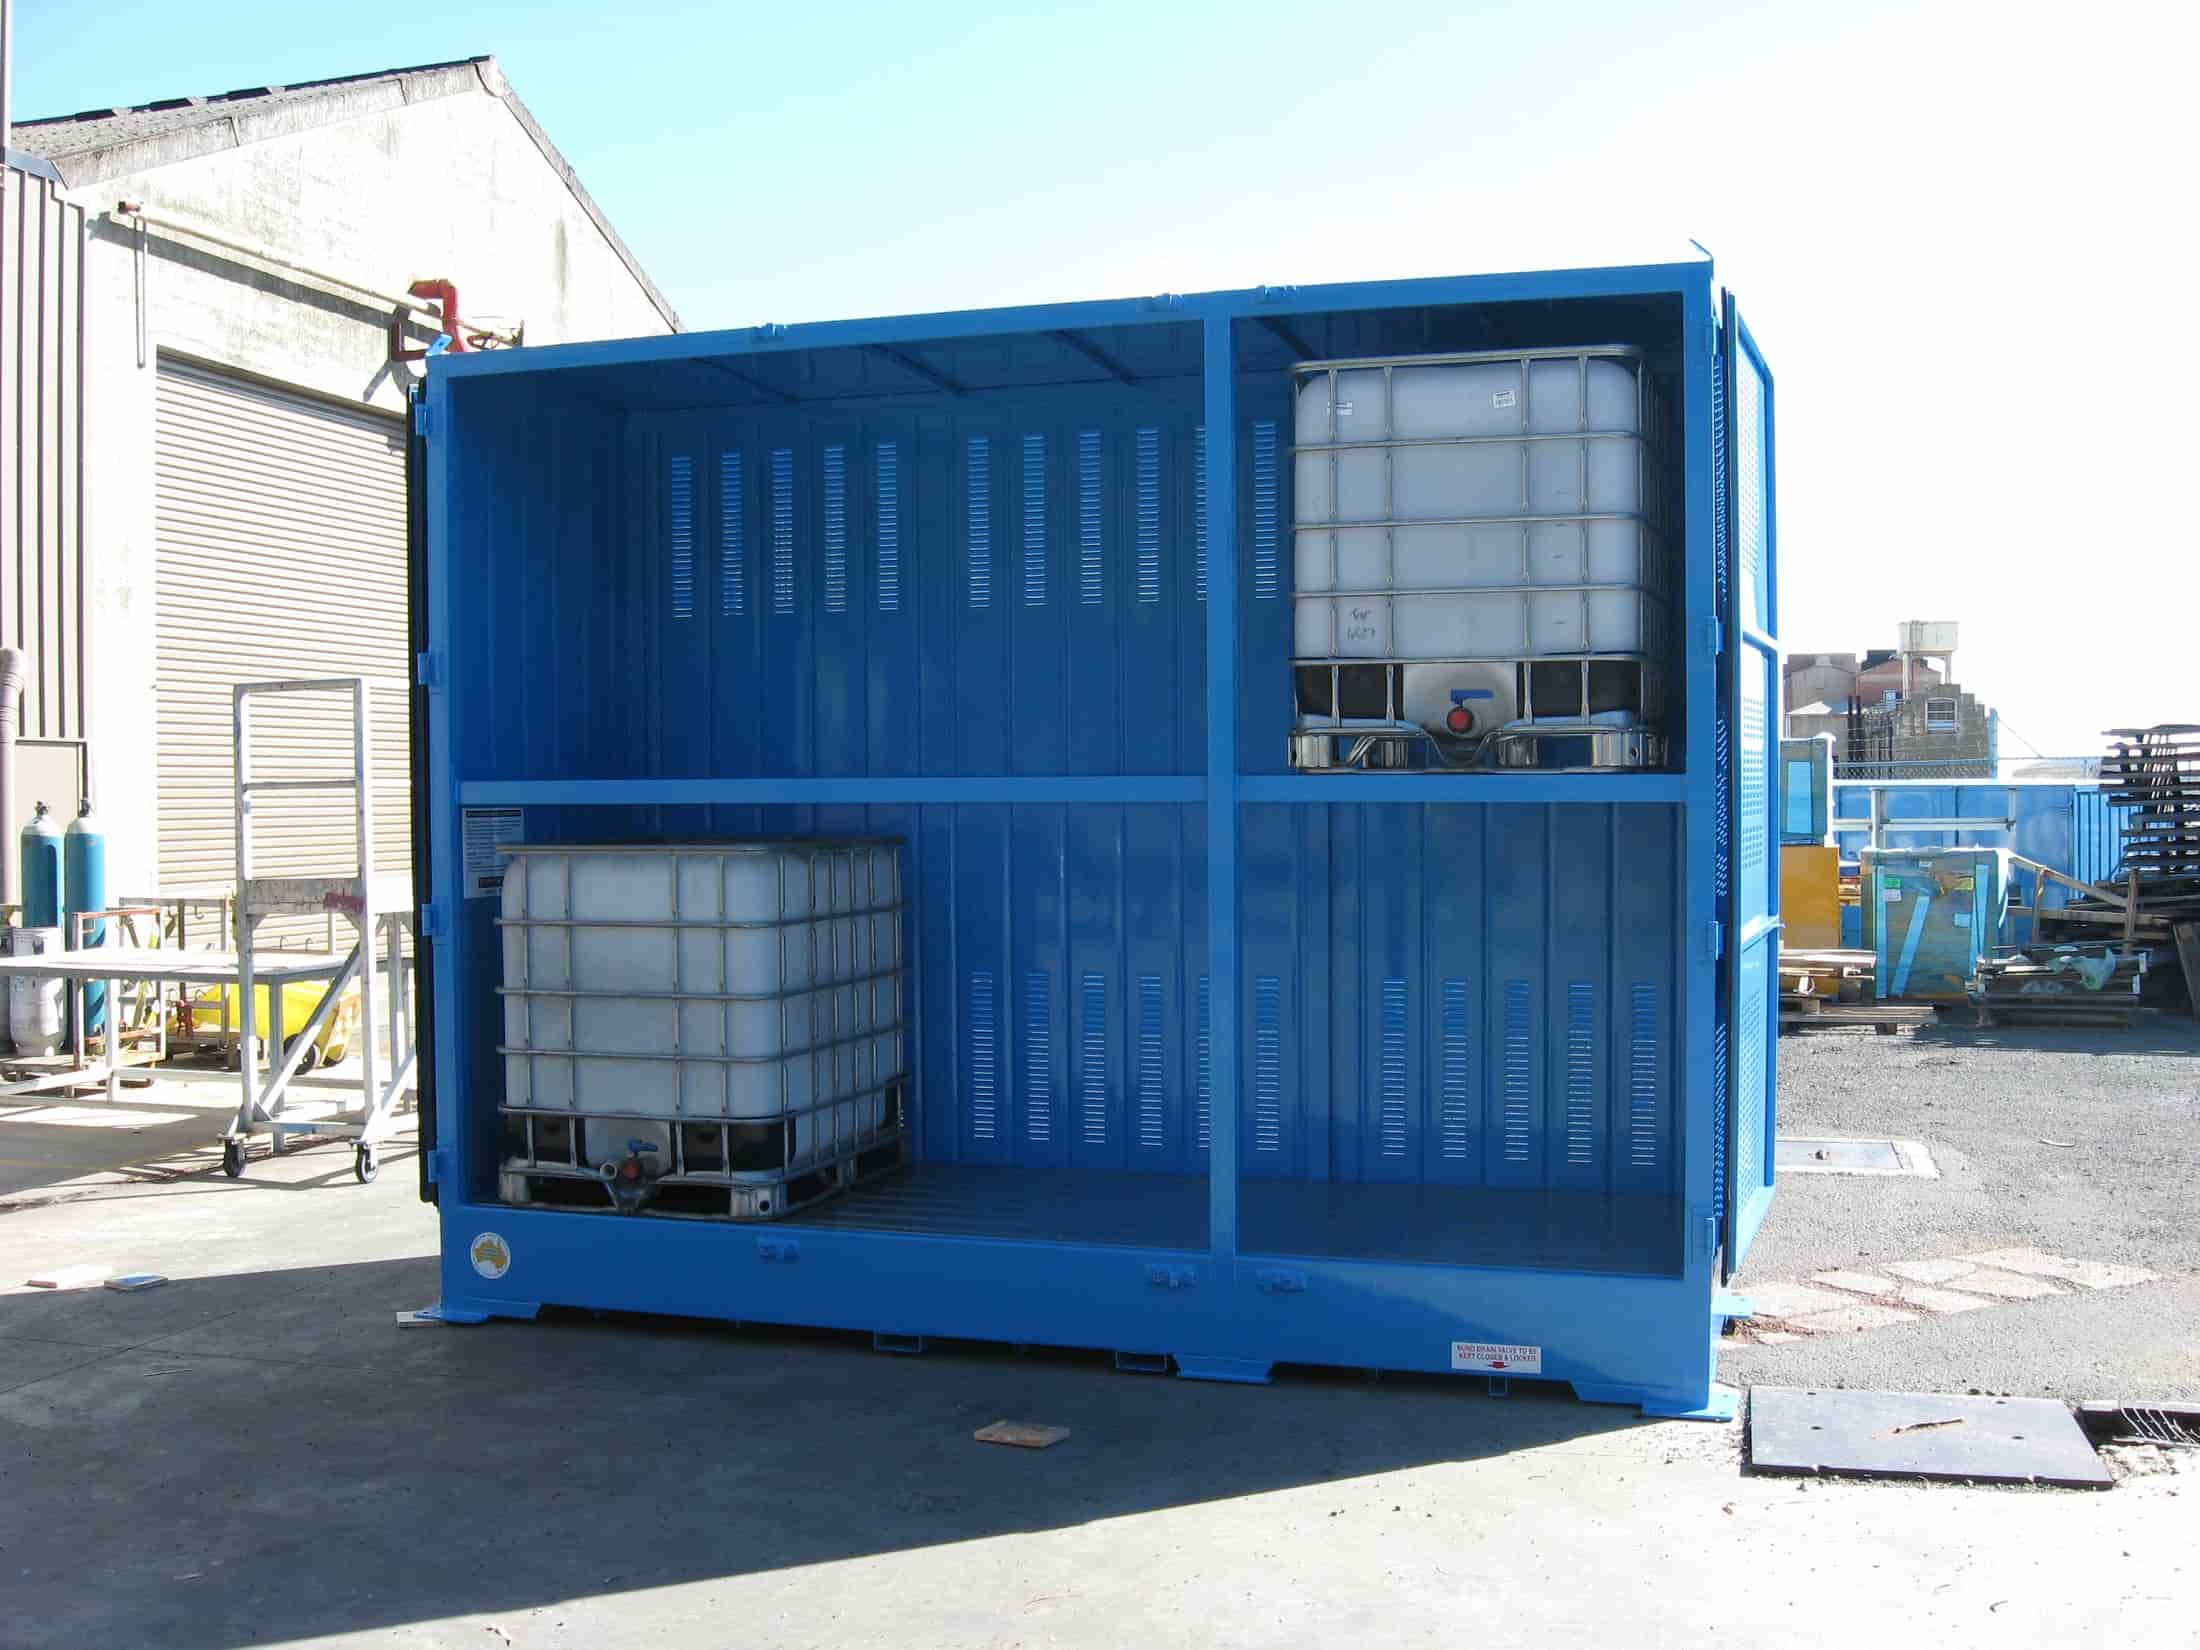 What's the difference between an indoor and outdoor flammable liquids cabinet?